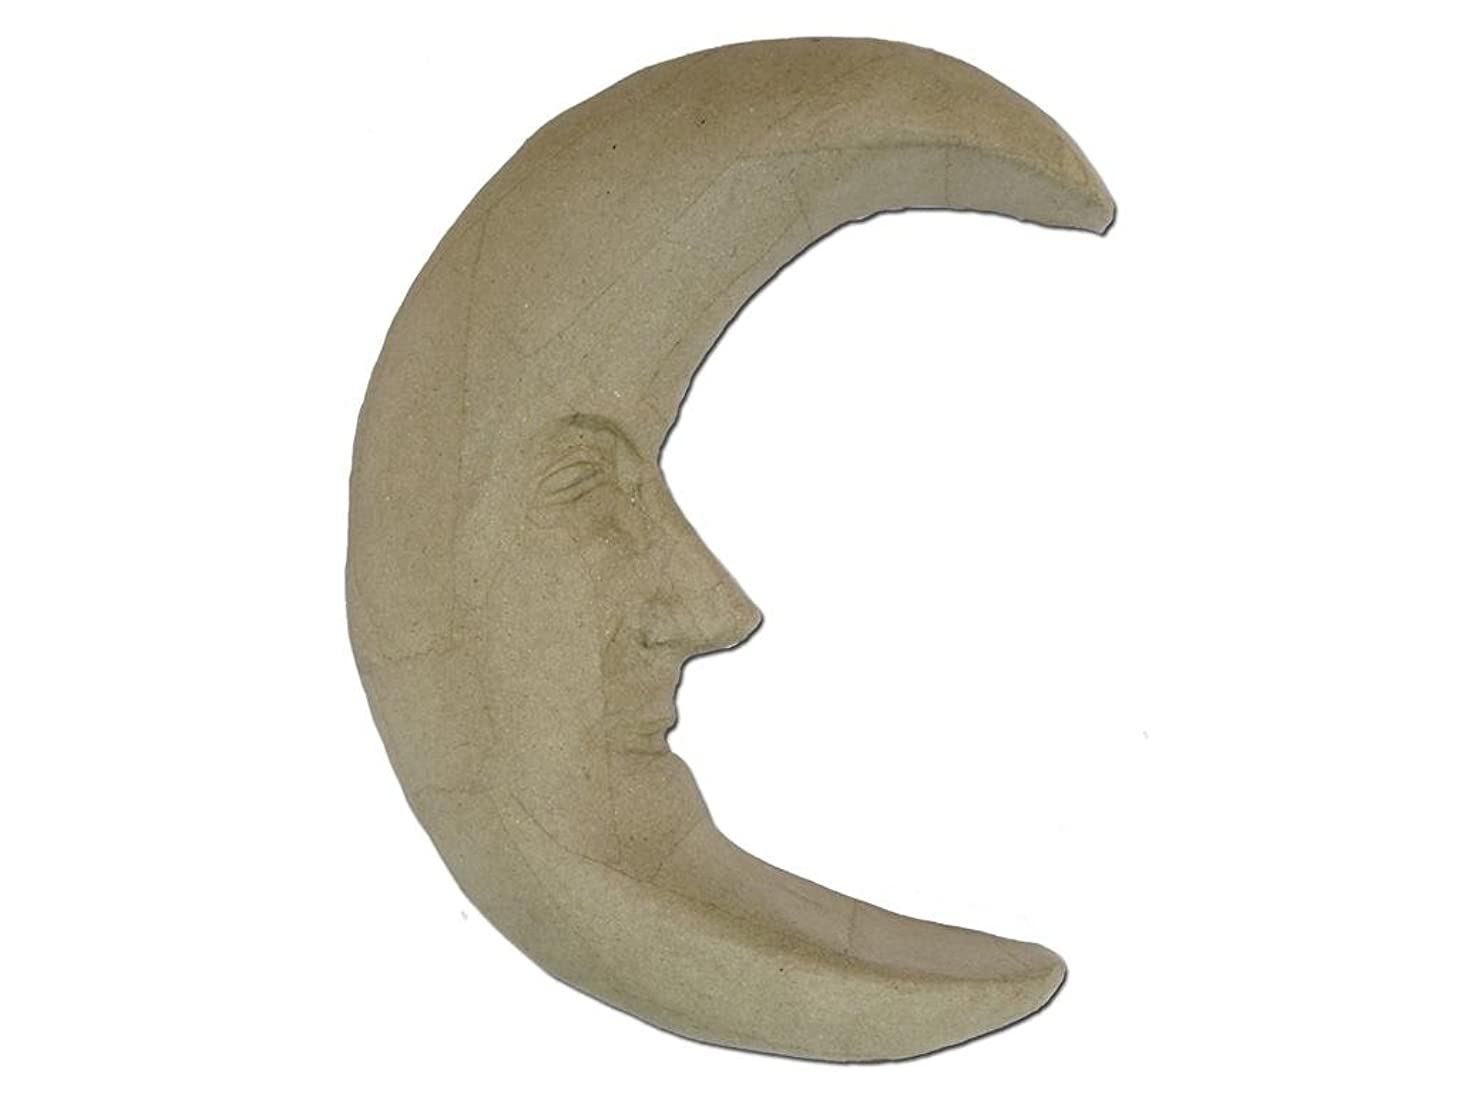 Craft Ped Paper CPLAD0006 Mache Moon with Face Kraft, 10x12